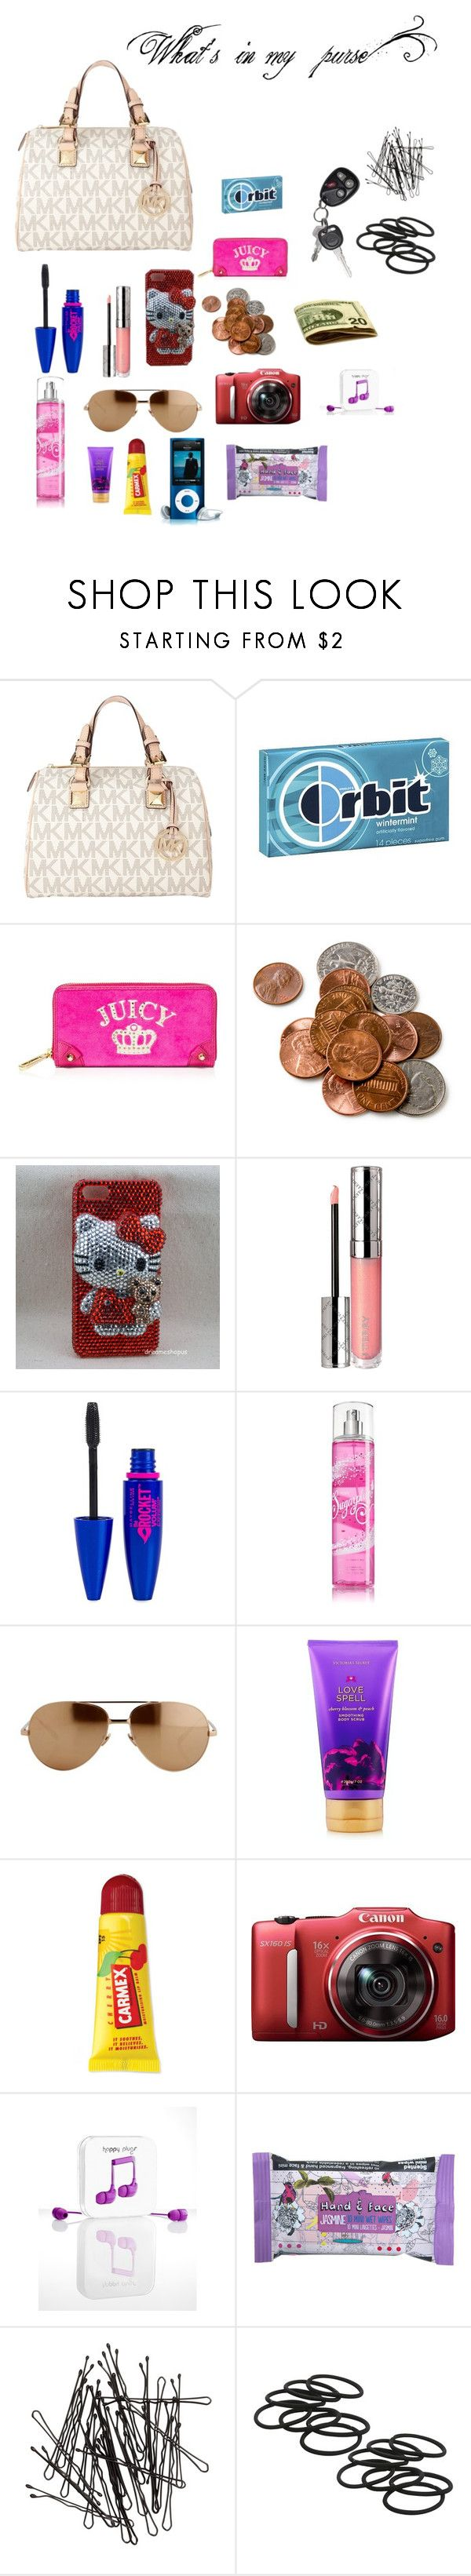 """What's in my purse?"" by allme4life ❤ liked on Polyvore featuring MICHAEL Michael Kors, Wrigley's, Juicy Couture, Hello Kitty, By Terry, Maybelline, Linda Farrow Luxe, Victoria's Secret, Carmex and Happy Plugs"